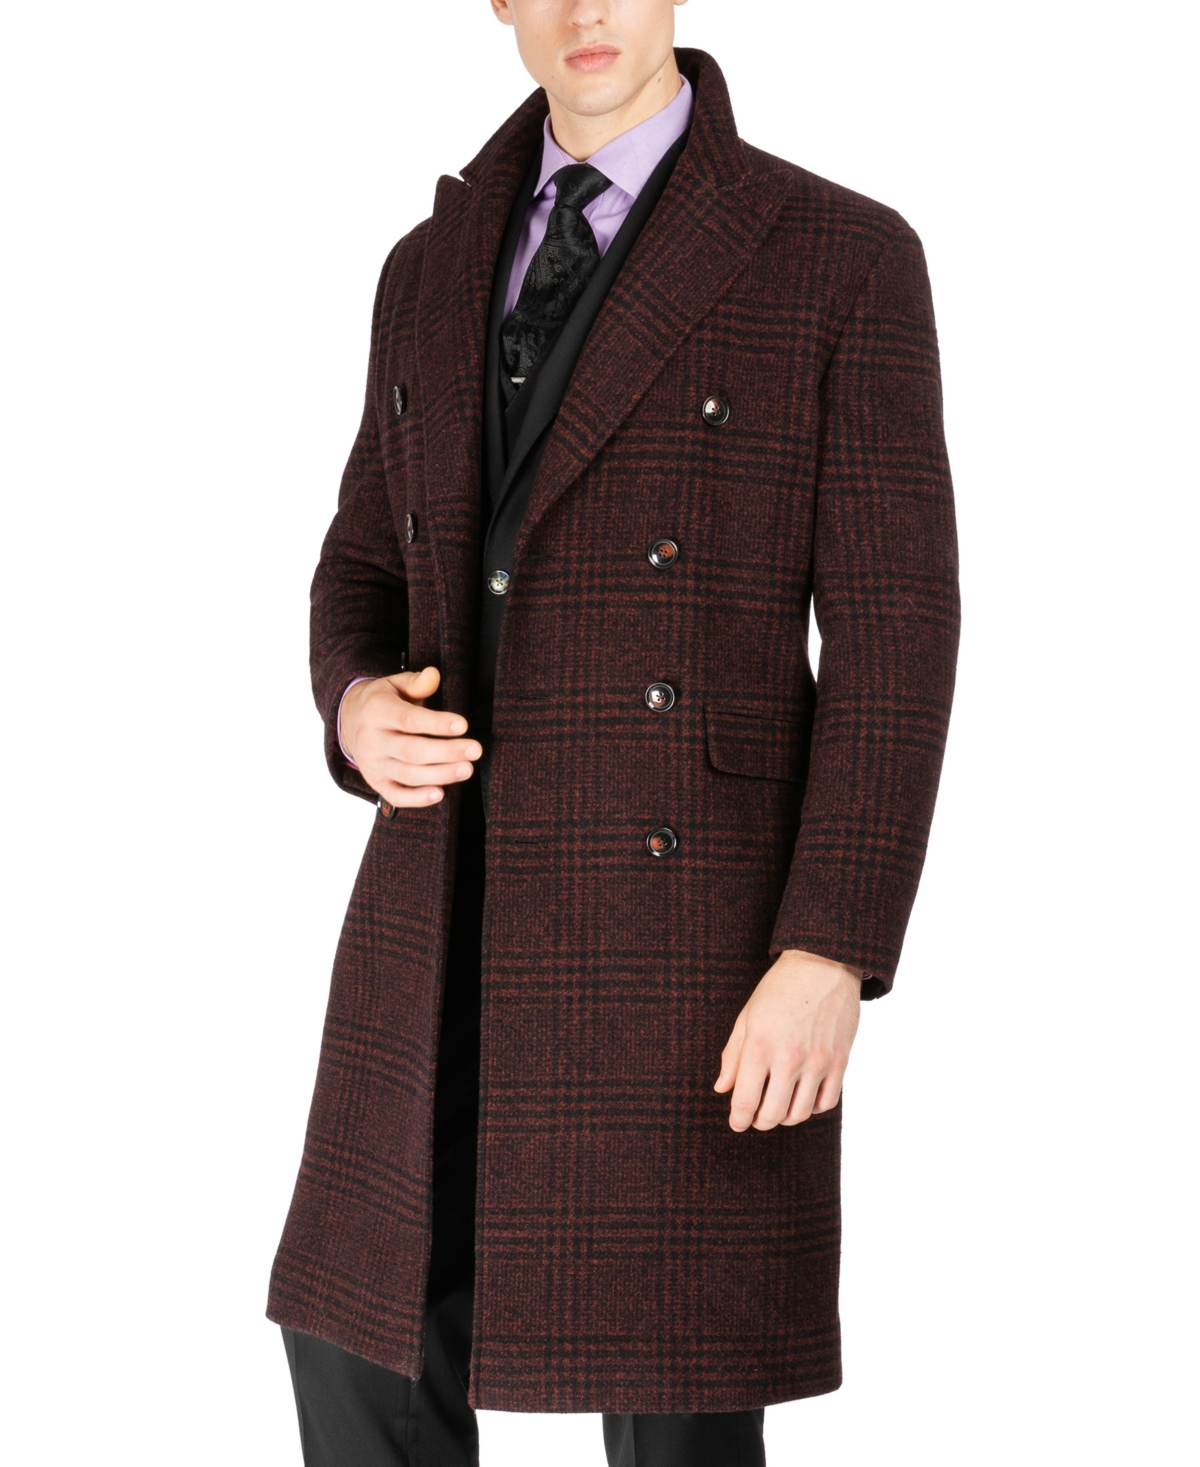 1920s Men's Style Clothing Tayion Collection Mens Classic Double-Breasted Glen Plaid Overcoat $495.00 AT vintagedancer.com